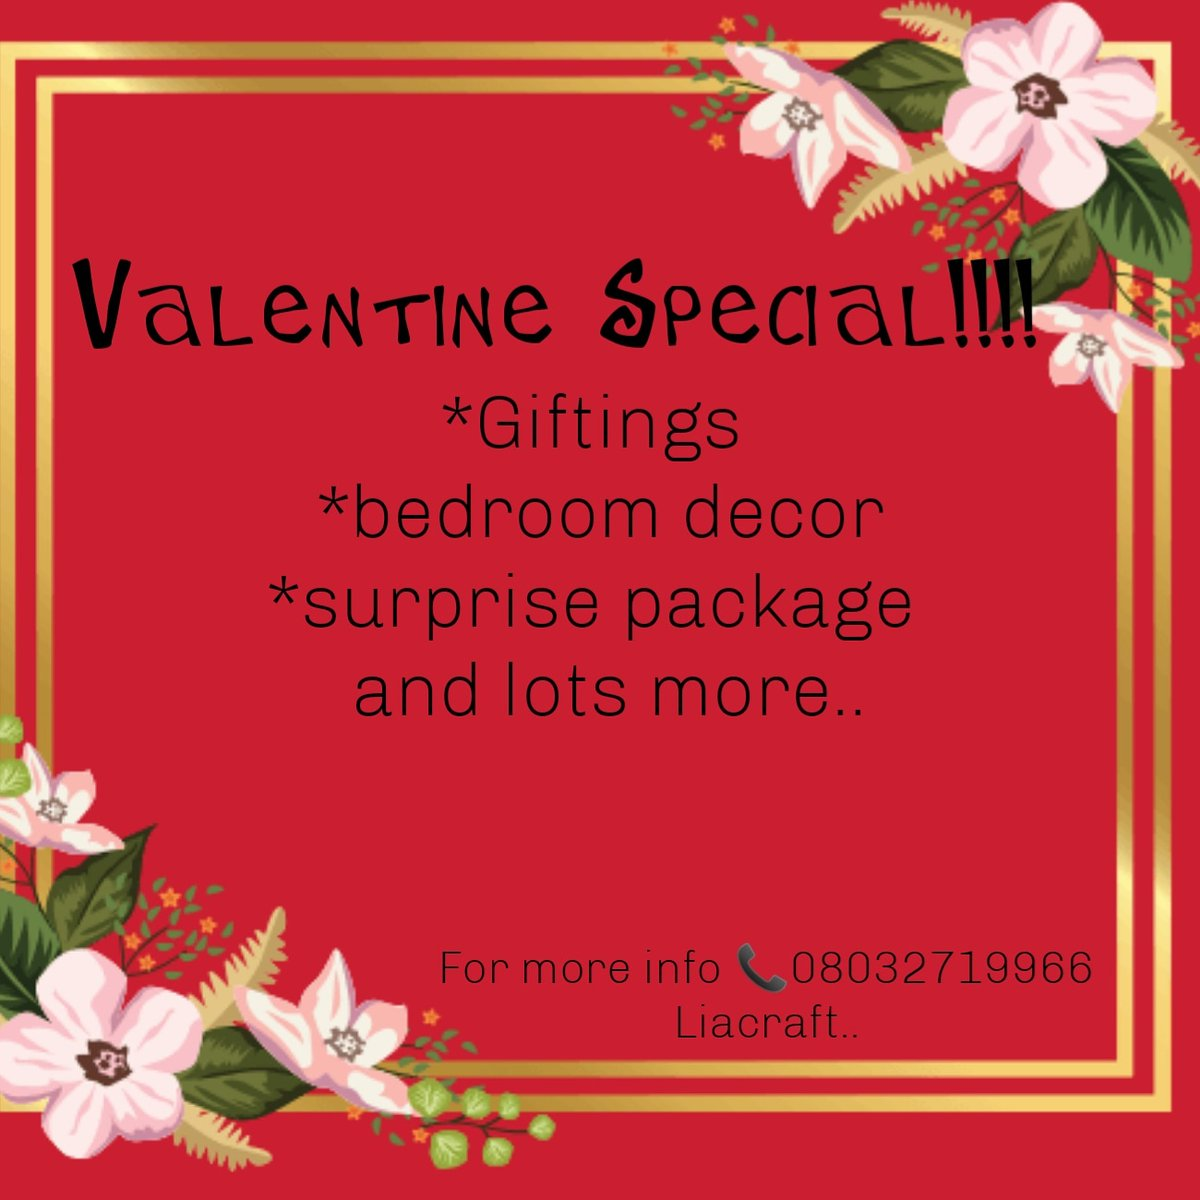 This is for the lovers, friends and that special someone ...#ValentineDay <br>http://pic.twitter.com/mcj8mgDuIc